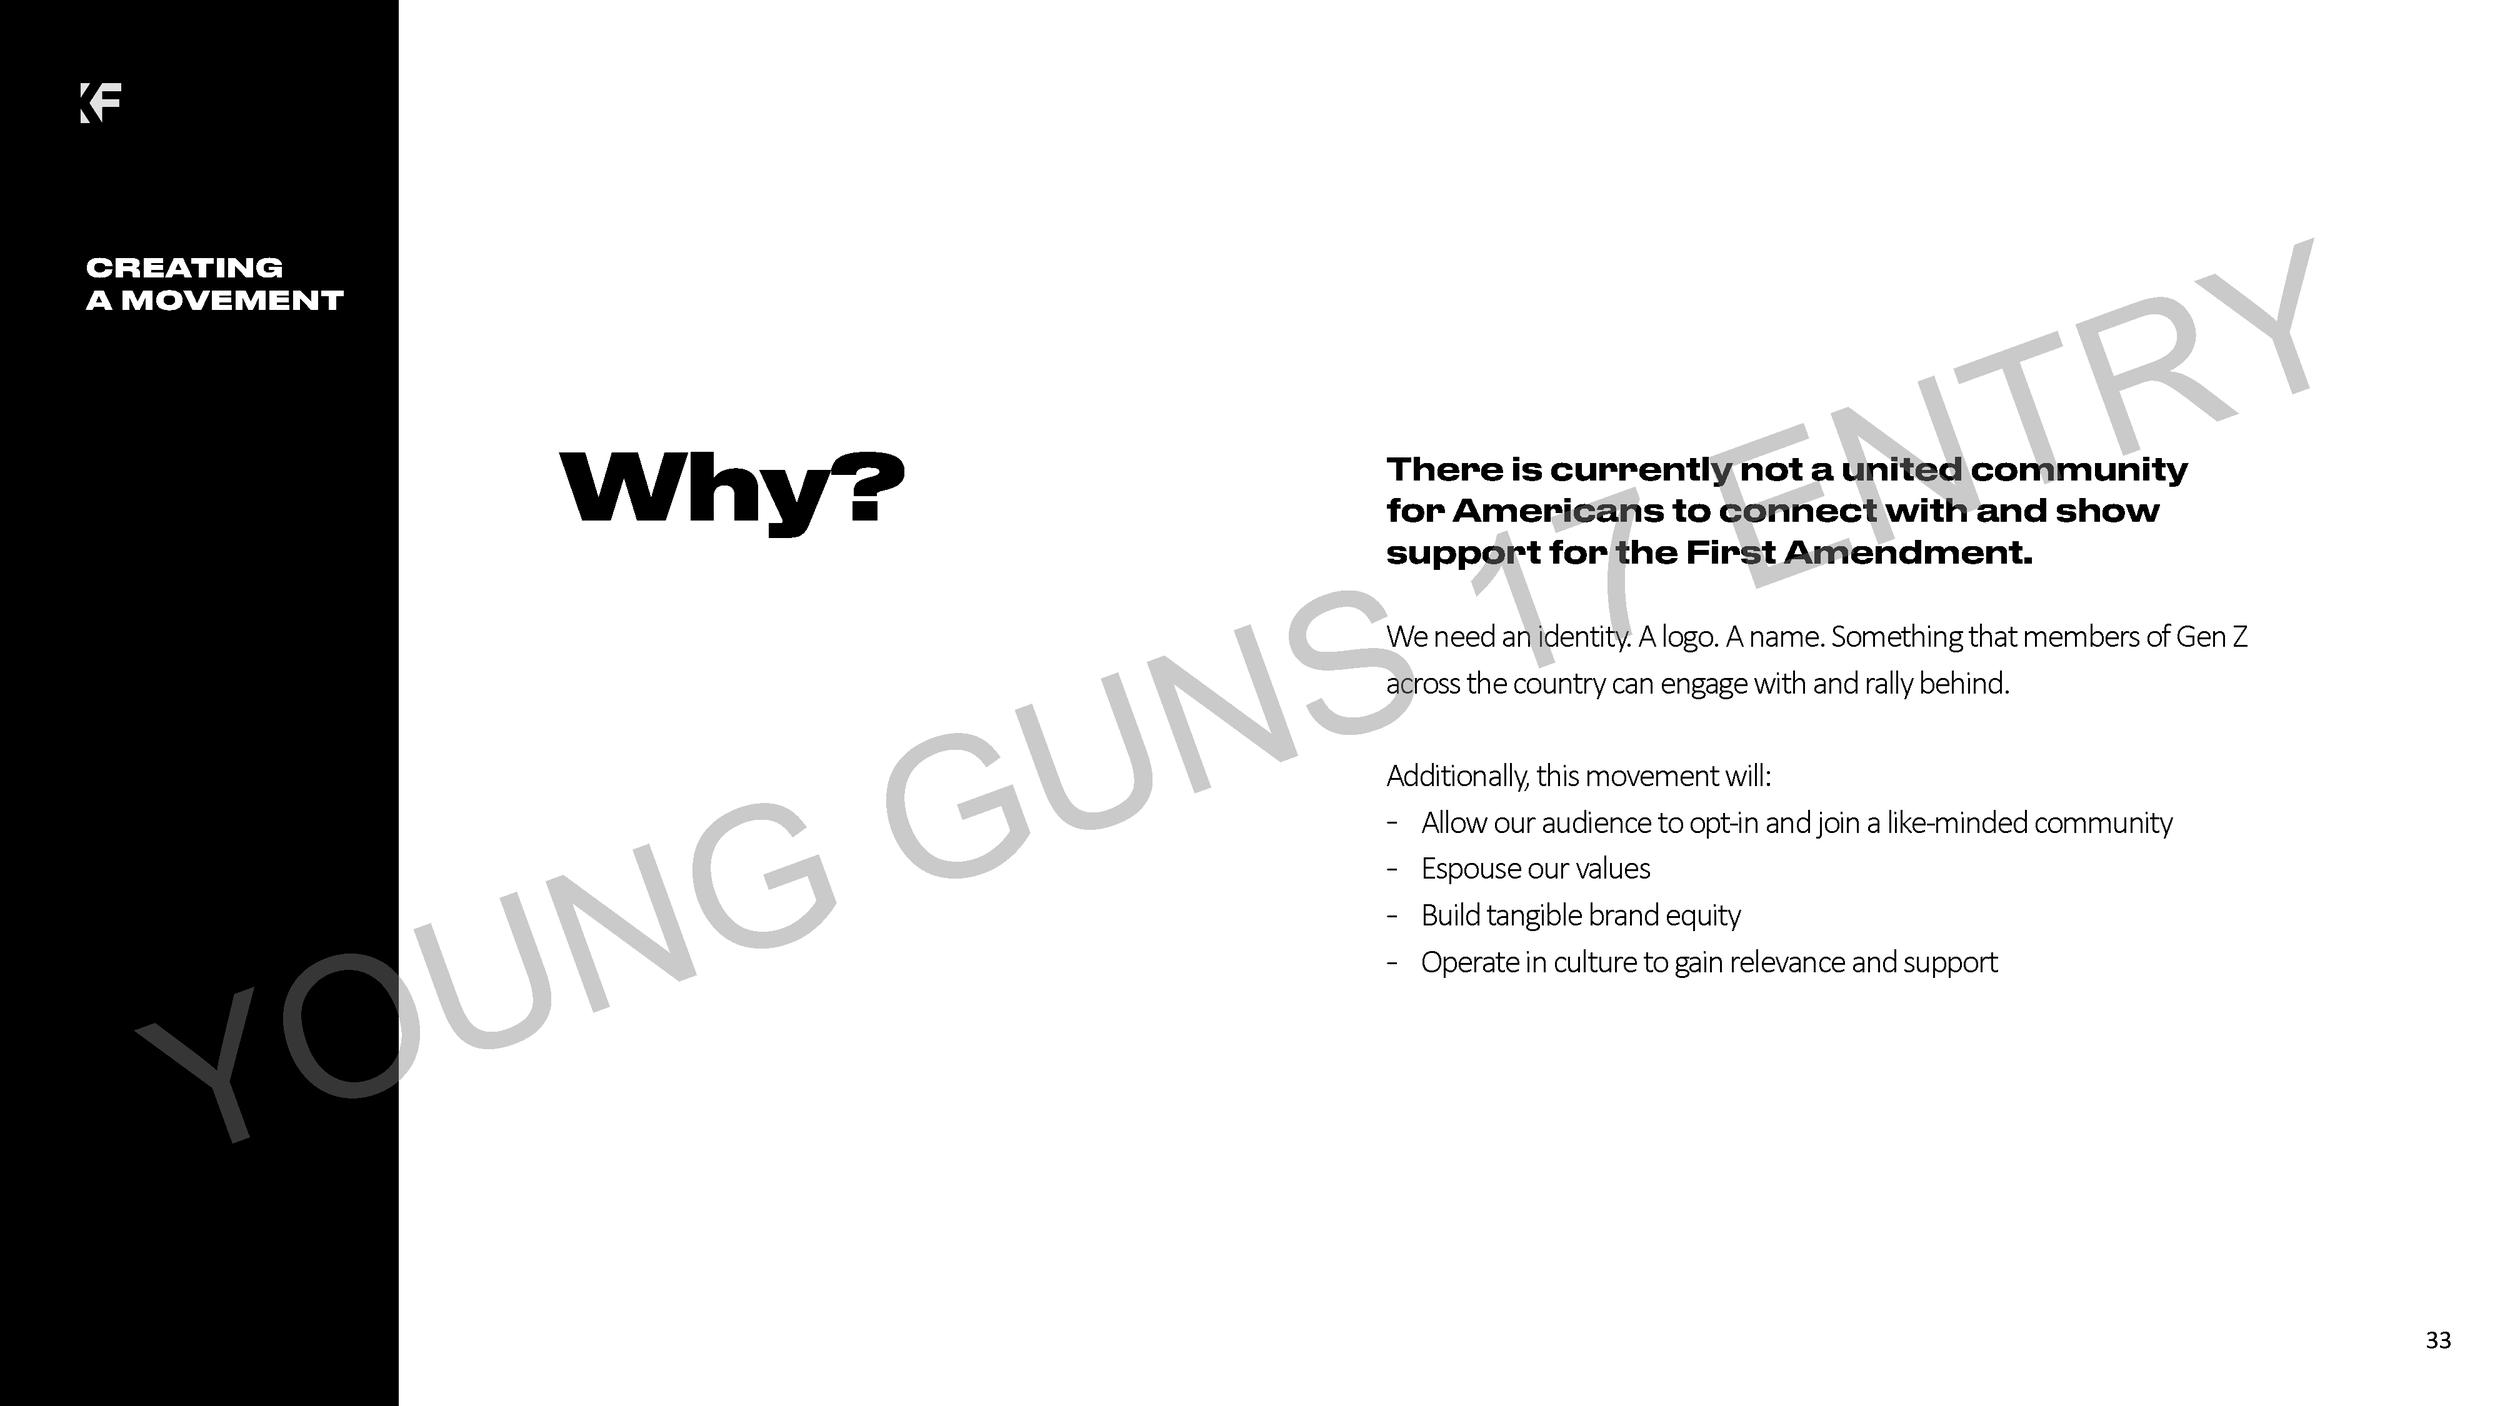 YOUNG GUNS - Knight Foundation Pitch Deck_Page_33.png